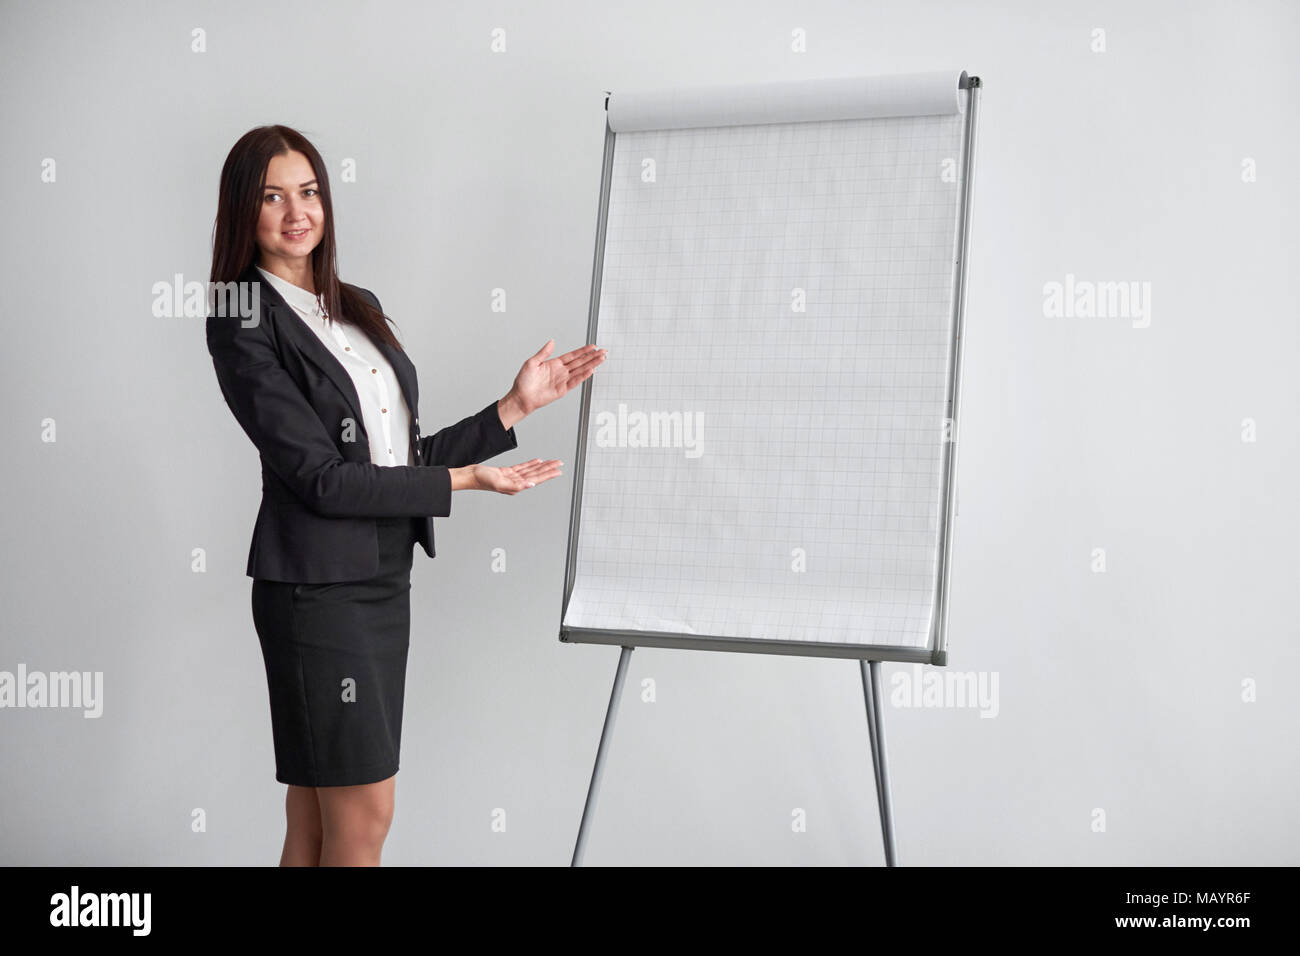 Portrait of young smiling businesswoman standing nearflipchart in office and pointing on it. - Stock Image